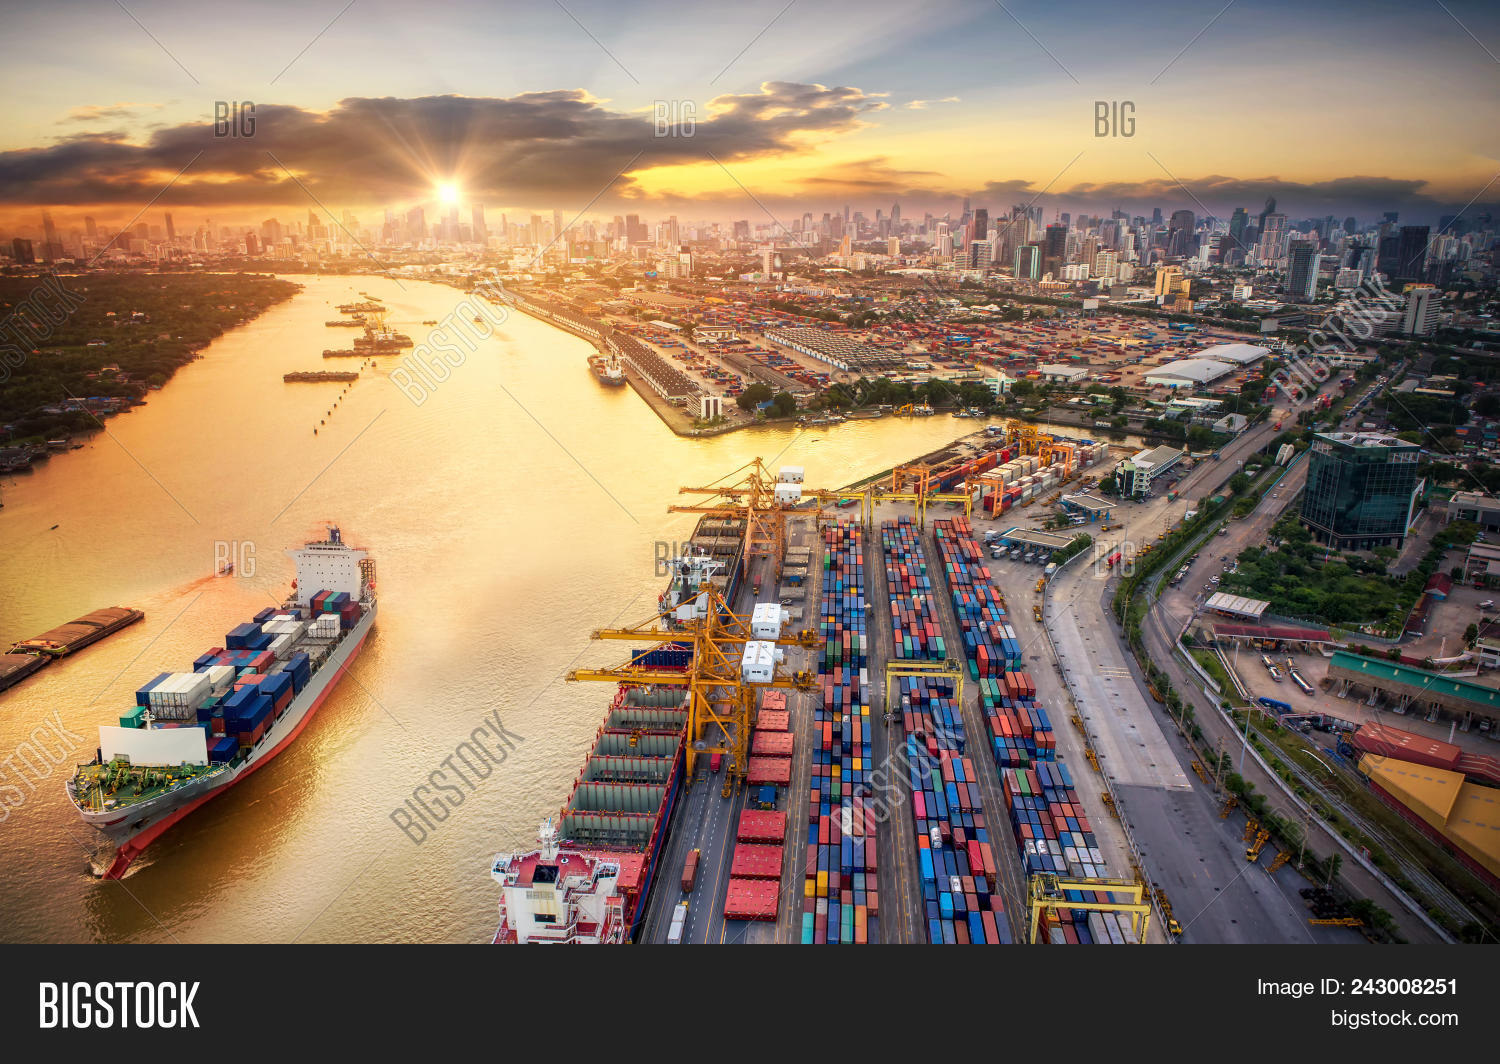 bangkok,boat,box,business,cargo,chain,city,commerce,concept,construction,container,courier,crane,delivery,distribution,dock,dockyard,economy,export,freight,global,harbor,harbour,import,industrial,industry,international,loading,logistic,maritime,nautical,plane,port,seaport,ship,shipping,shipyard,stacked,storage,structure,supply,technology,terminal,trade,traffic,transport,transportation,truck,unloading,weight